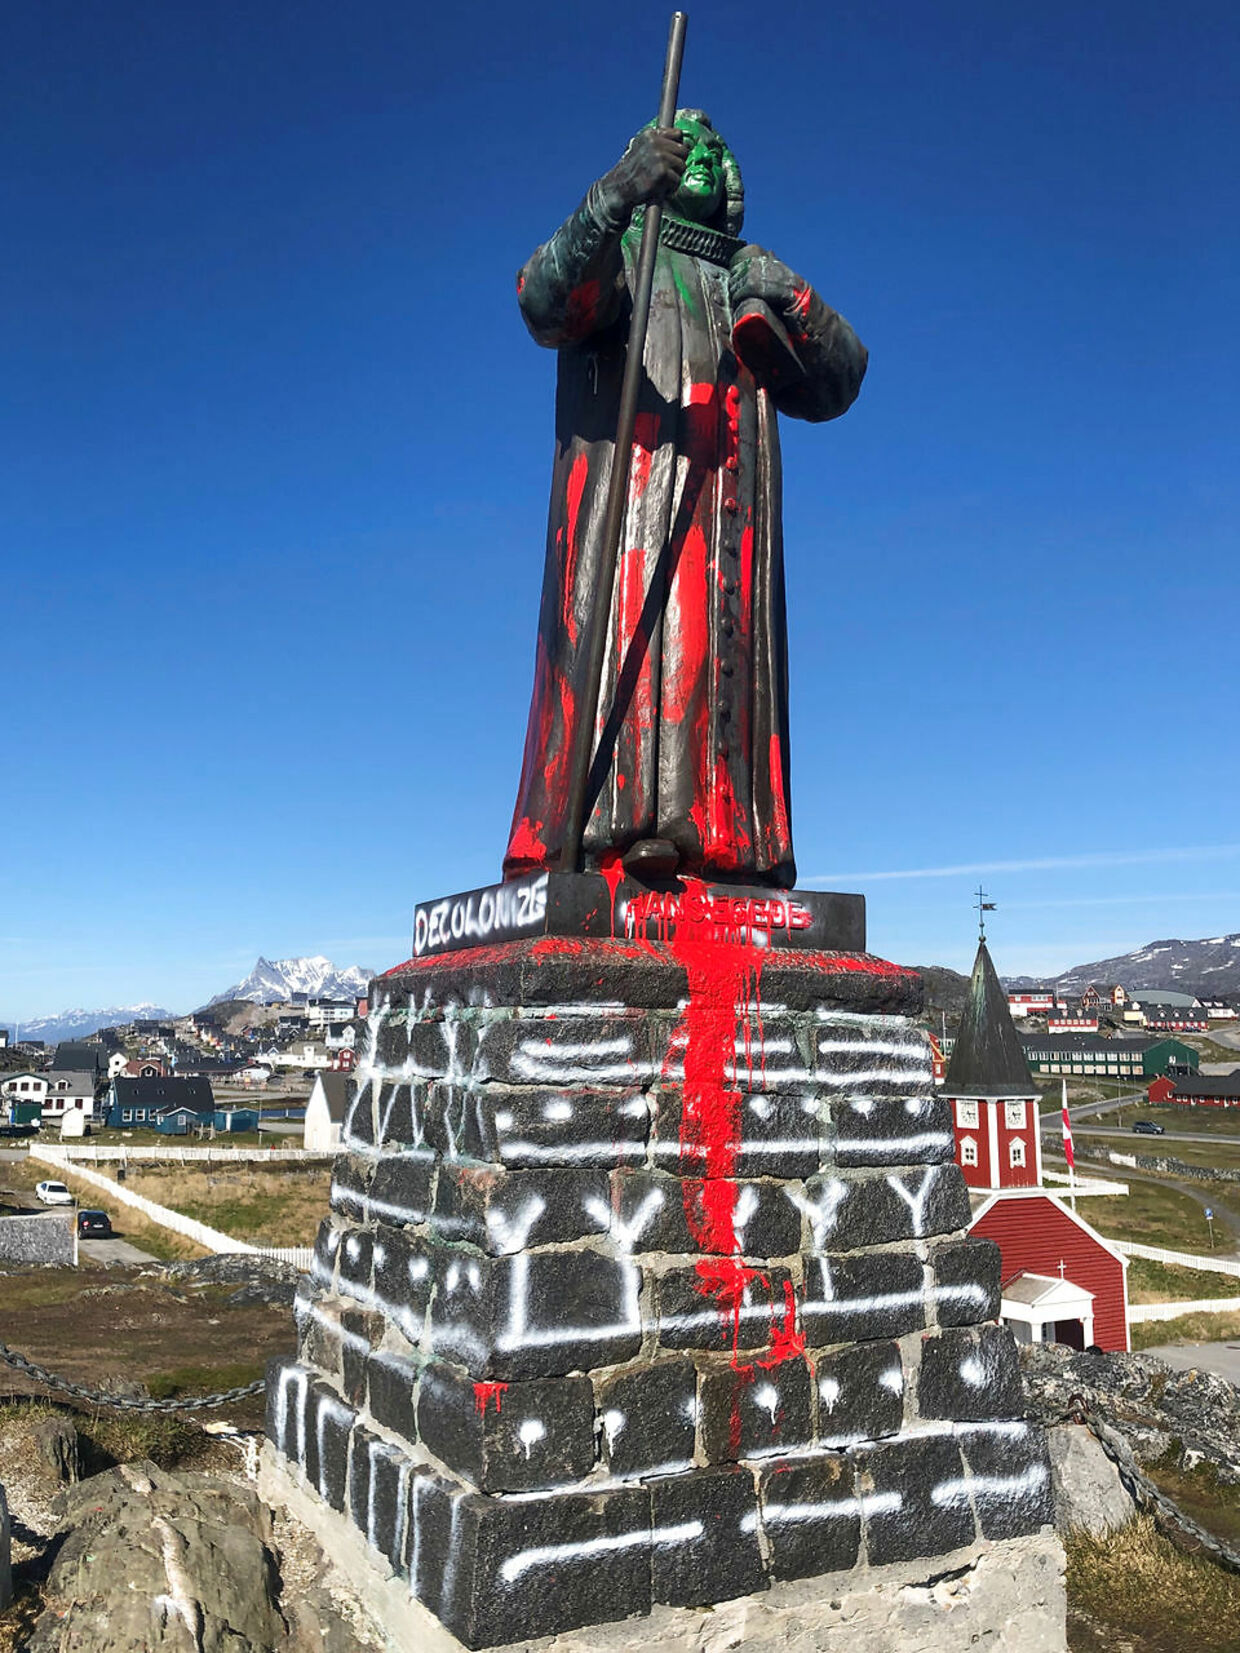 The statue of Hans Egede is seen after being vandalized in Nuuk, Greenland June 21, 2020, in this image obtained from social media. Hans Peter Kleemann/via REUTERS THIS IMAGE HAS BEEN SUPPLIED BY A THIRD PARTY. MANDATORY CREDIT.NO RESALES.NO ARCHIVES.